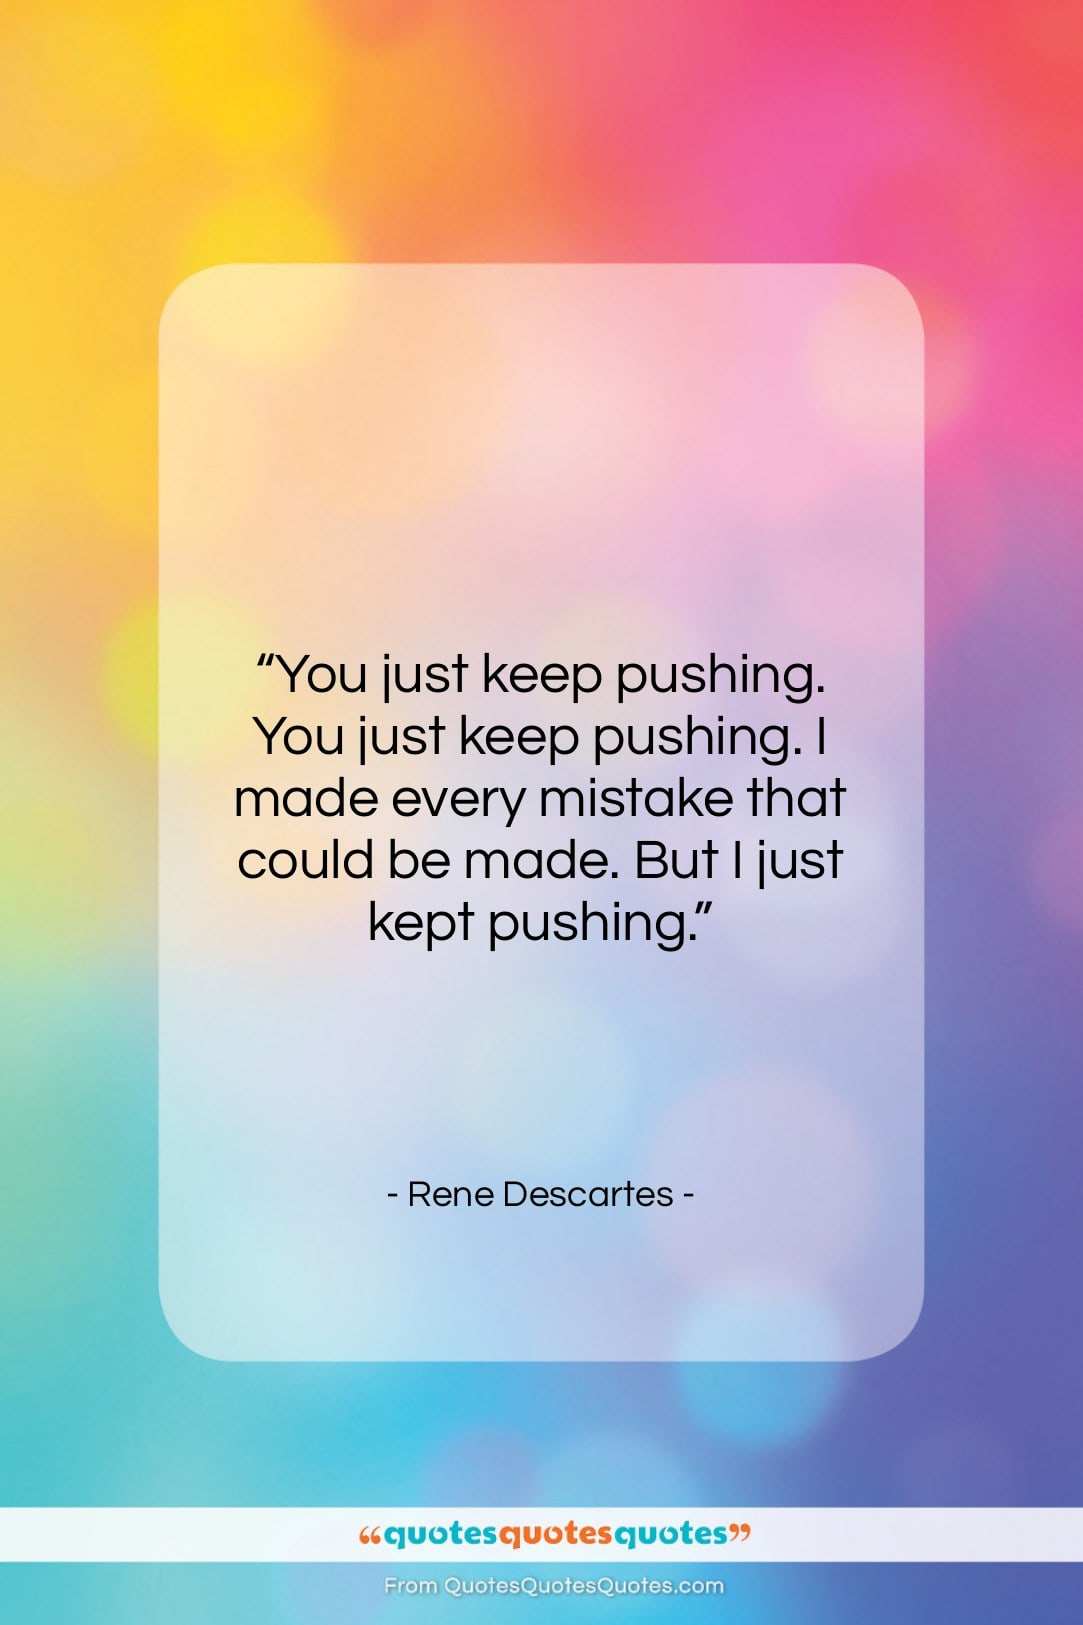 Get the whole Rene Descartes quote: \